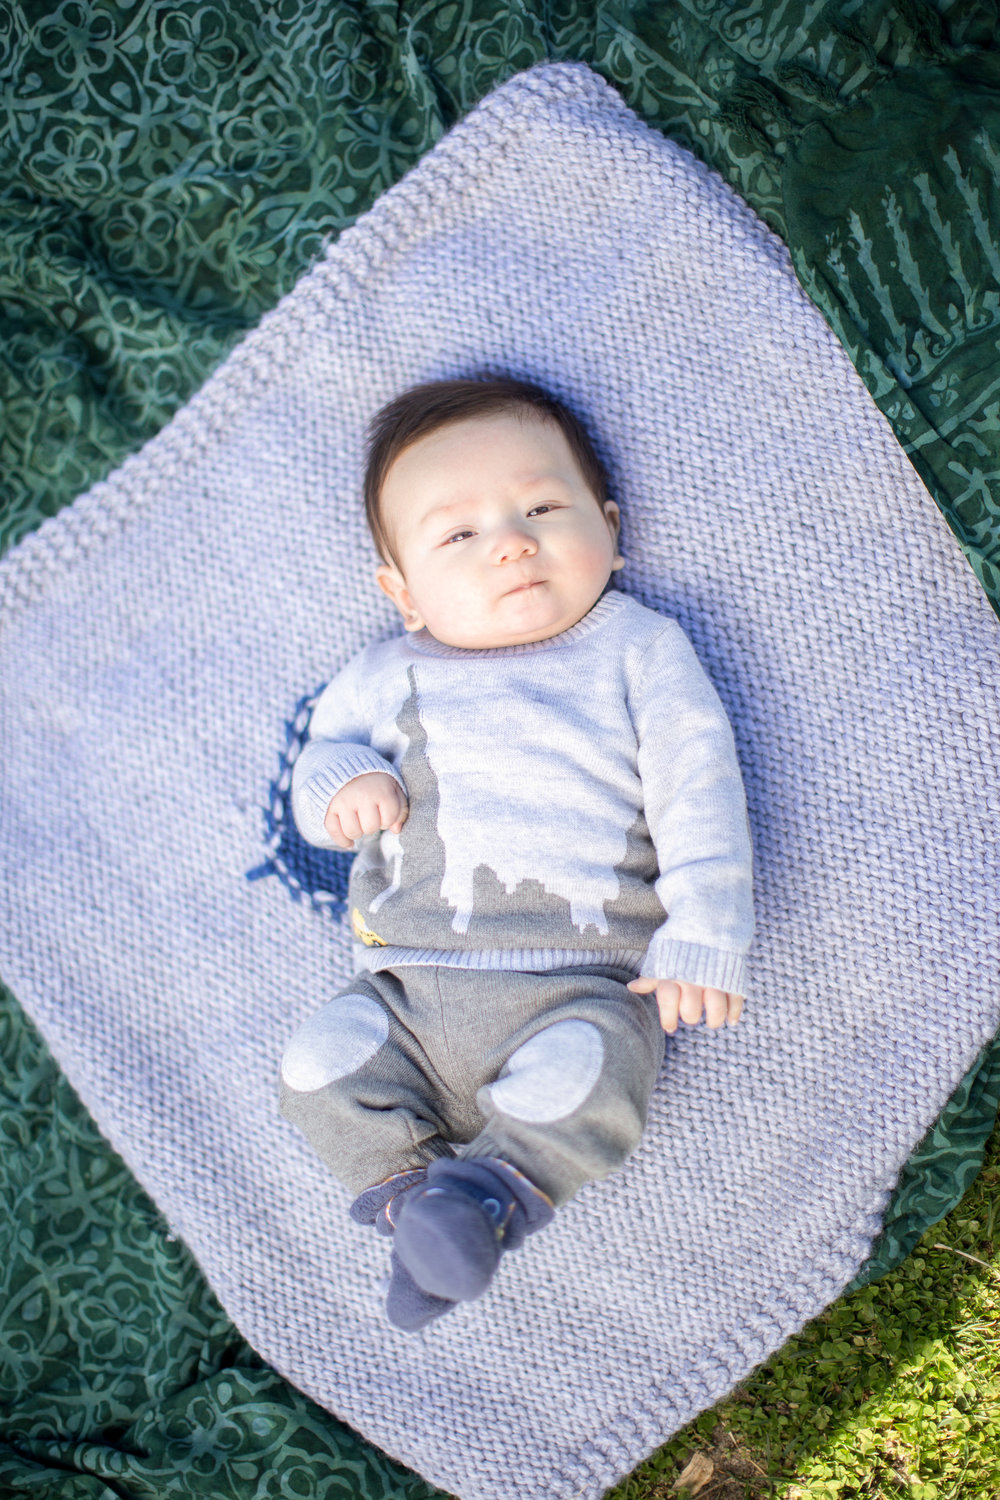 Copy of Baby on a Blanket